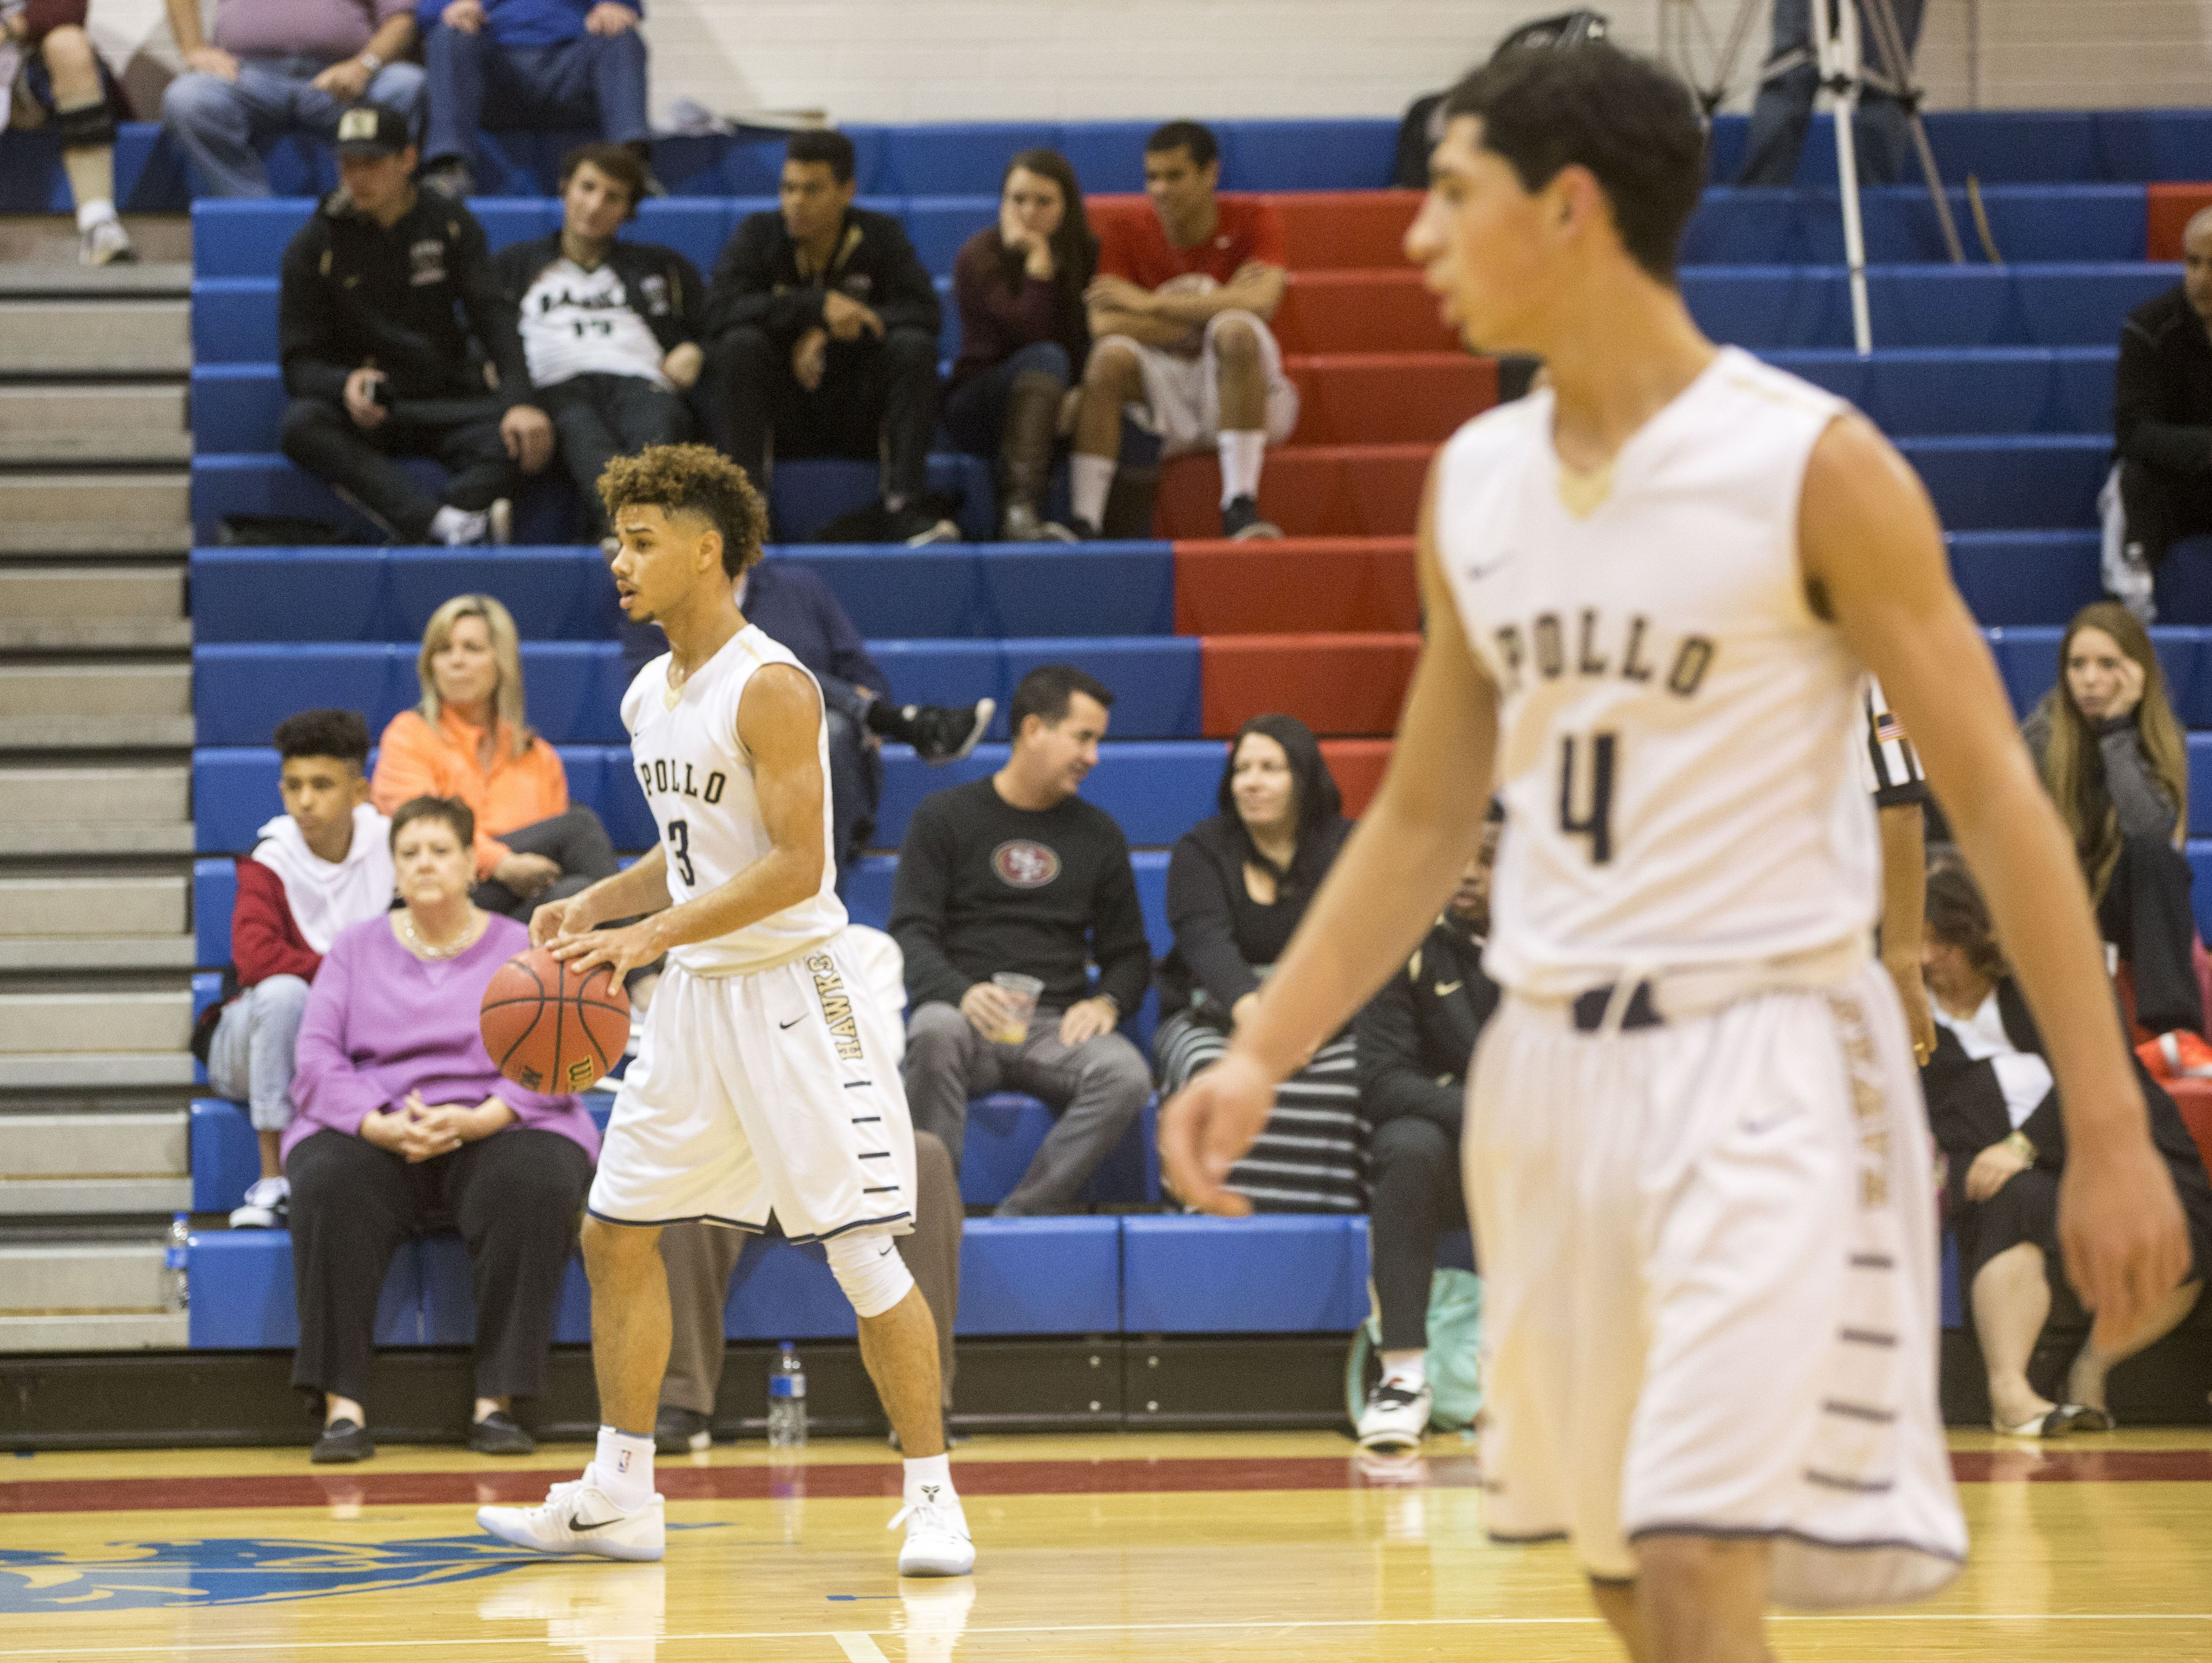 Apollo guards Holland Woods #3 and Dre Marin #4 play against Mountain Ridge at Mountain View High School.